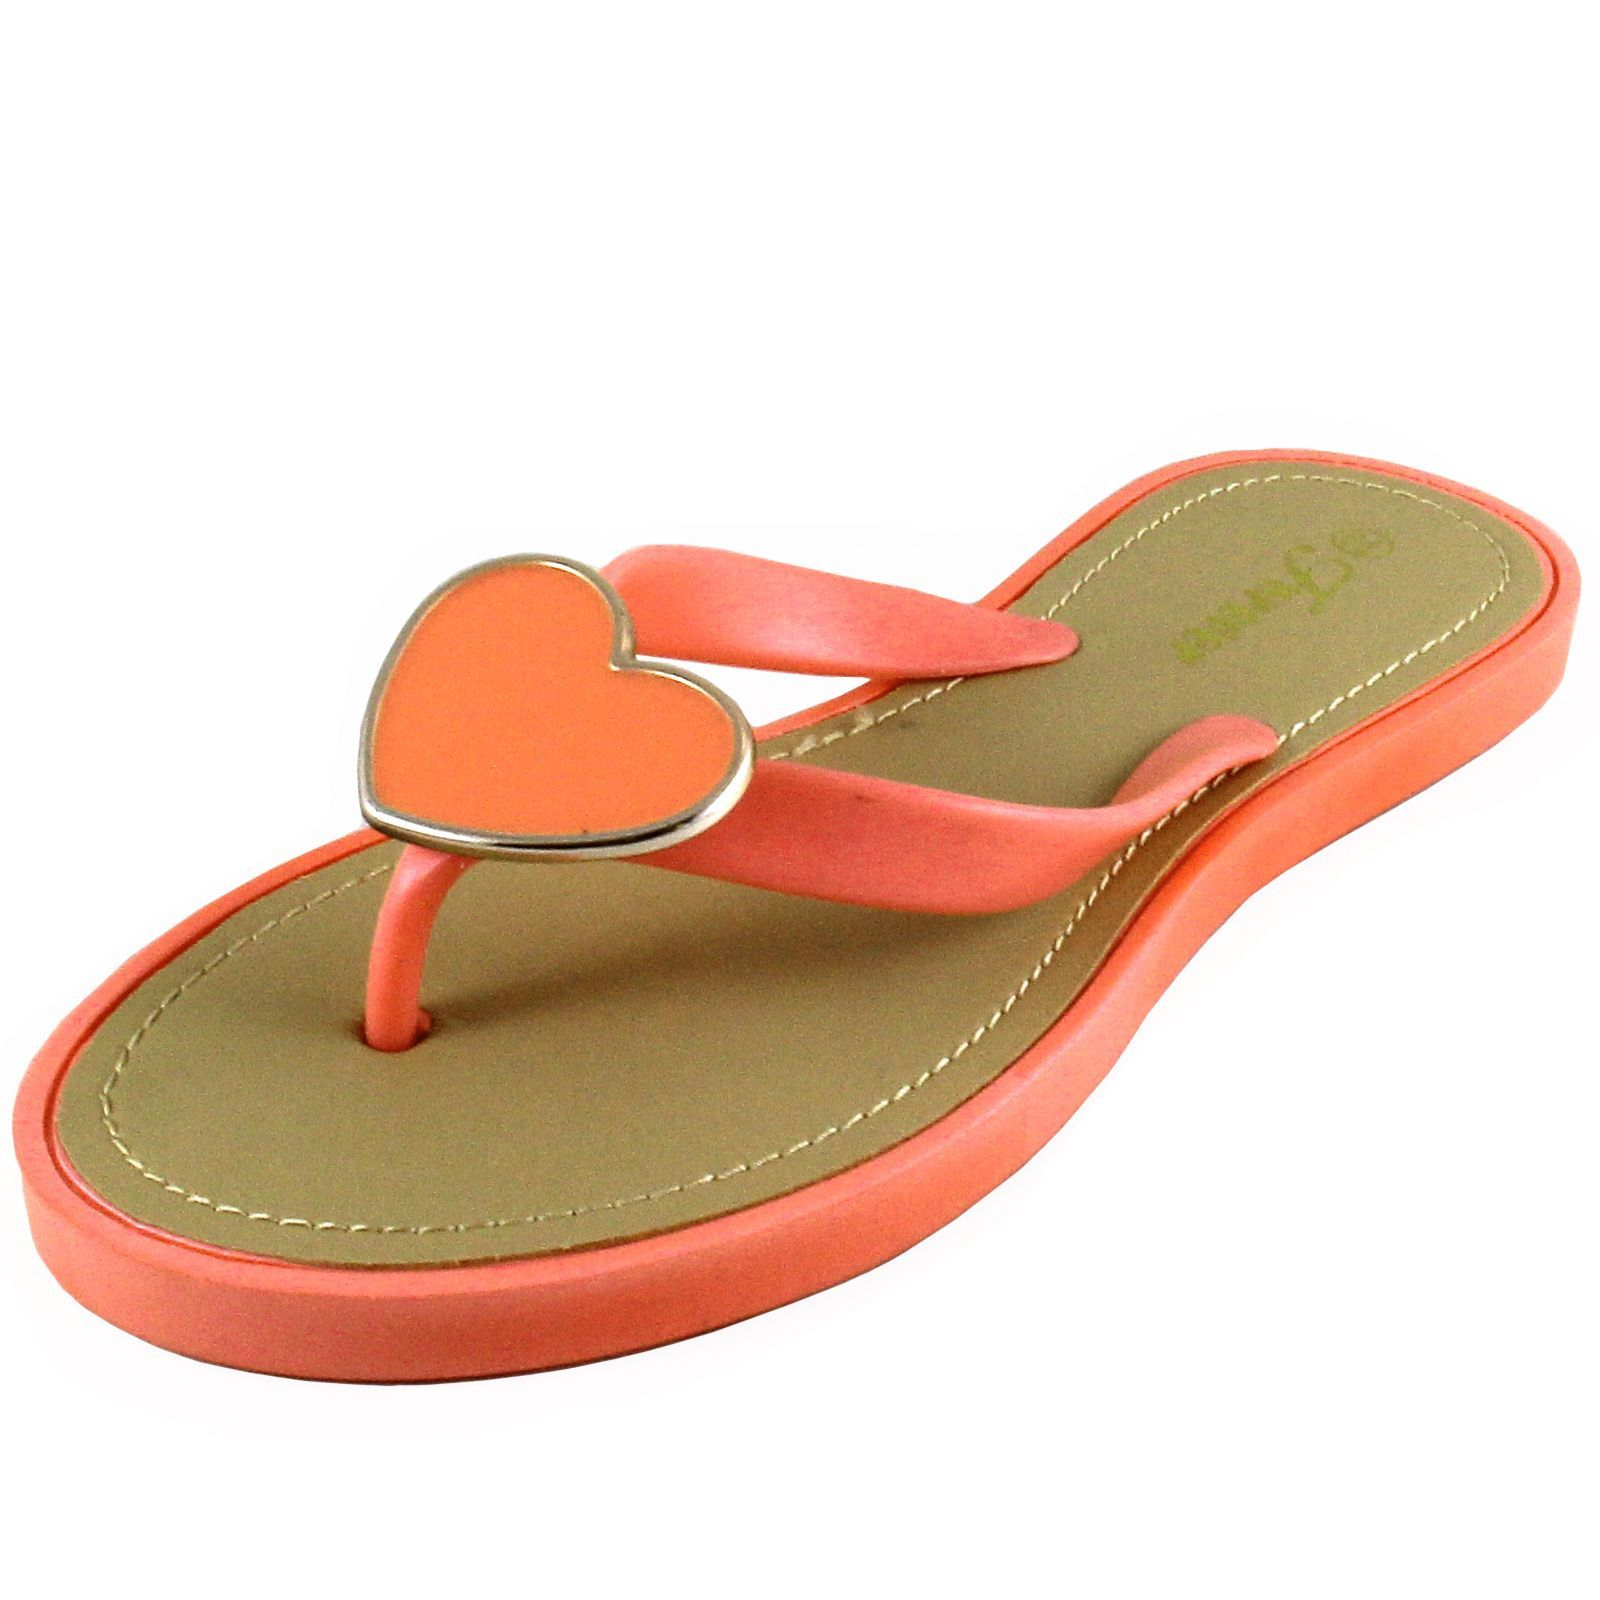 ac23f0e5dd8280 New women s shoes open toe t strap flip flop sandals summer casual coral  heart. Flip Flop SandalsFlip FlopsT ...